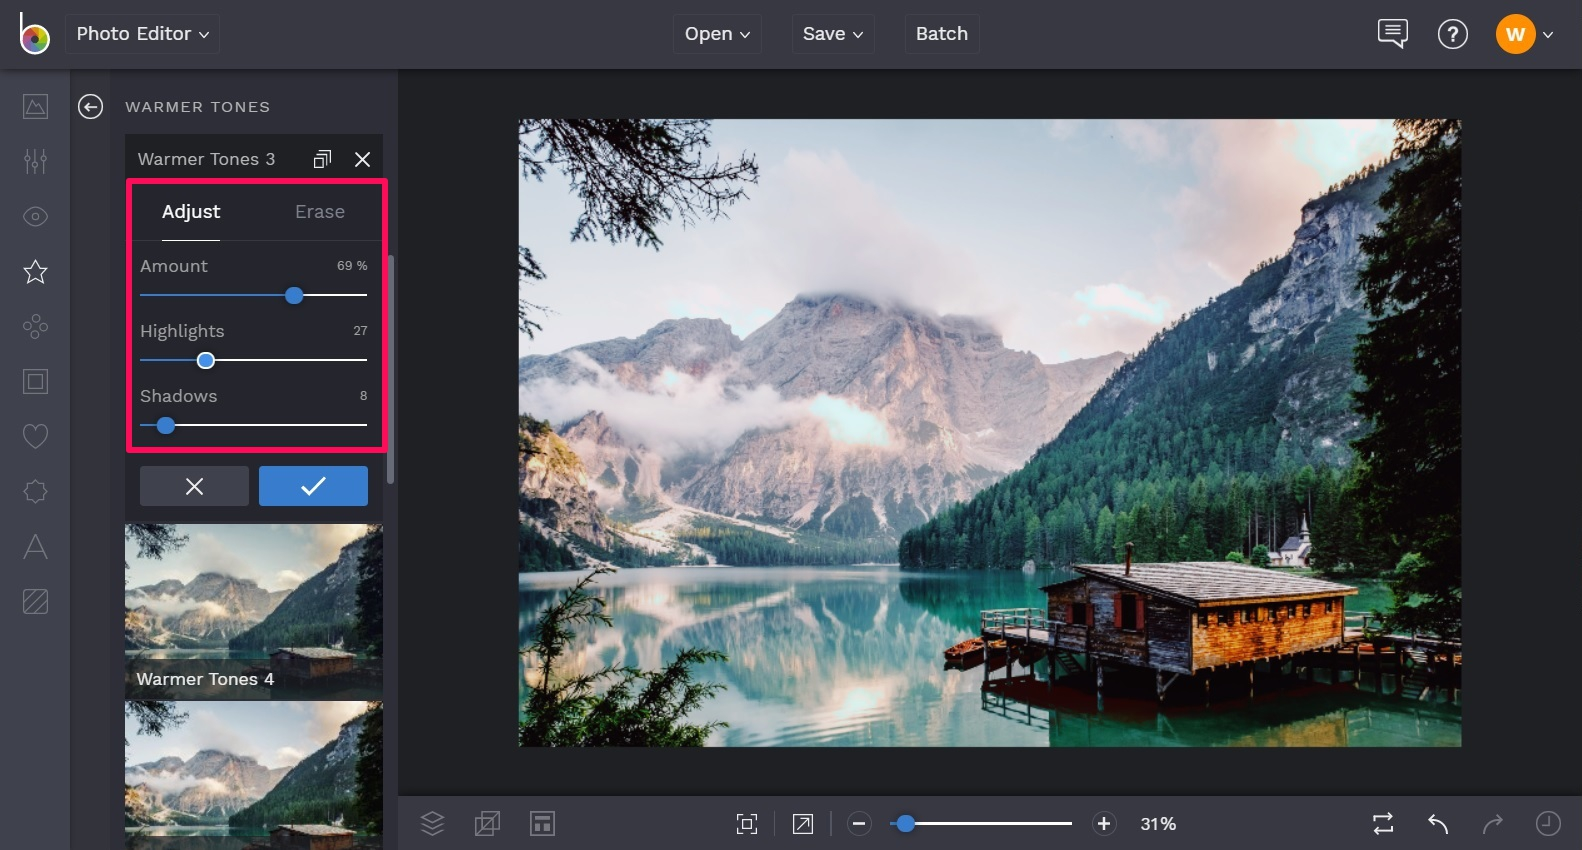 Adjust the tones in your warm tone photography